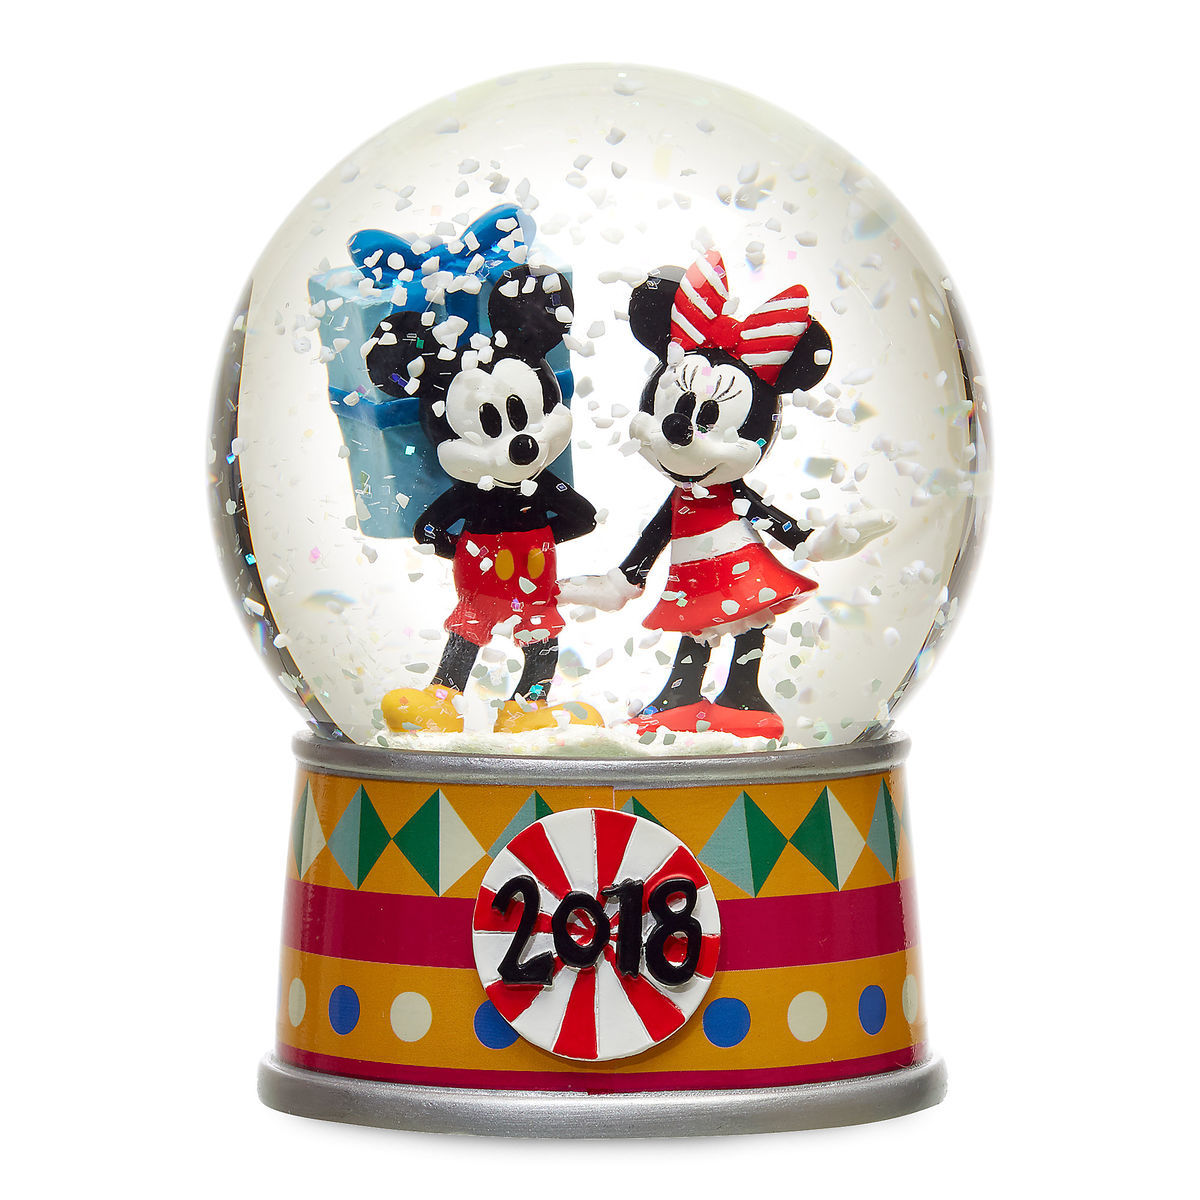 Disney Snow Globe - Holiday Cheer - 2018 Mickey and Minnie Mouse